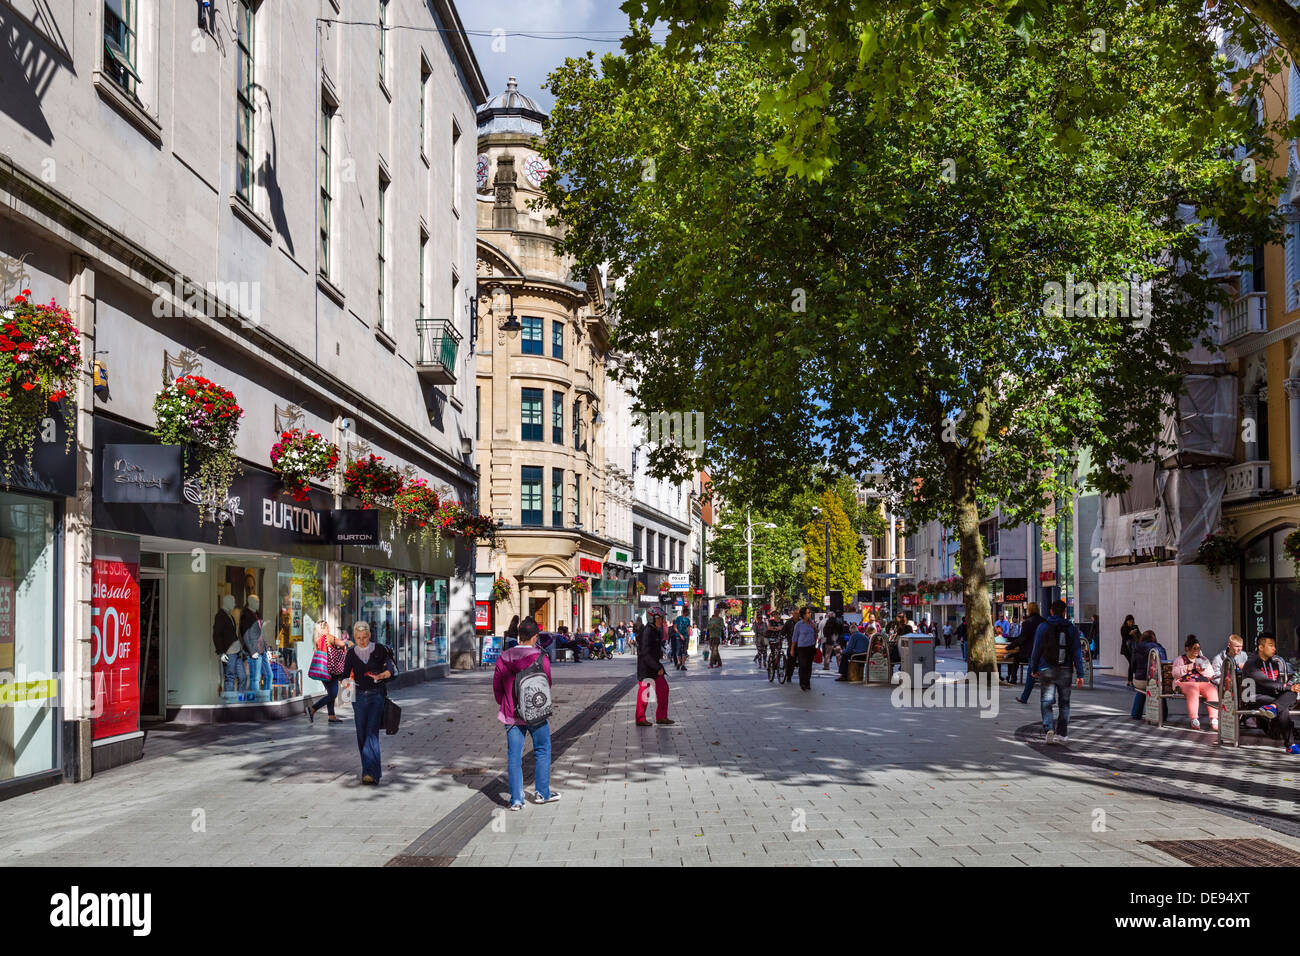 Shops on Queen Street in the city centre, Cardiff, South Glamorgan, Wales, UK Stock Photo